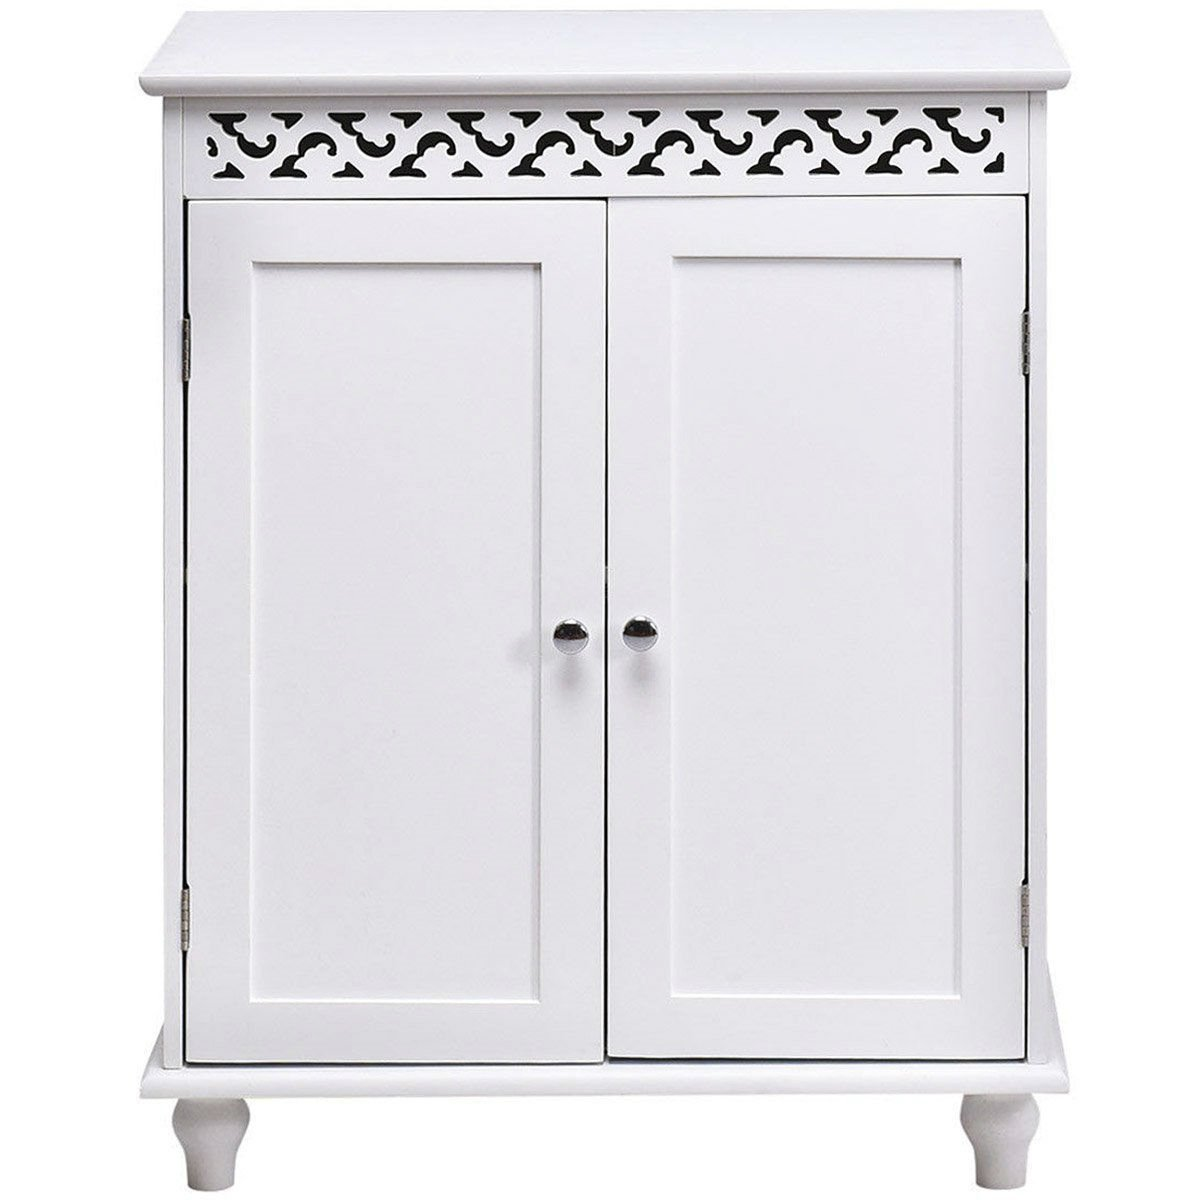 White Modern 2-Door Bathroom Storage Floor Cabinet